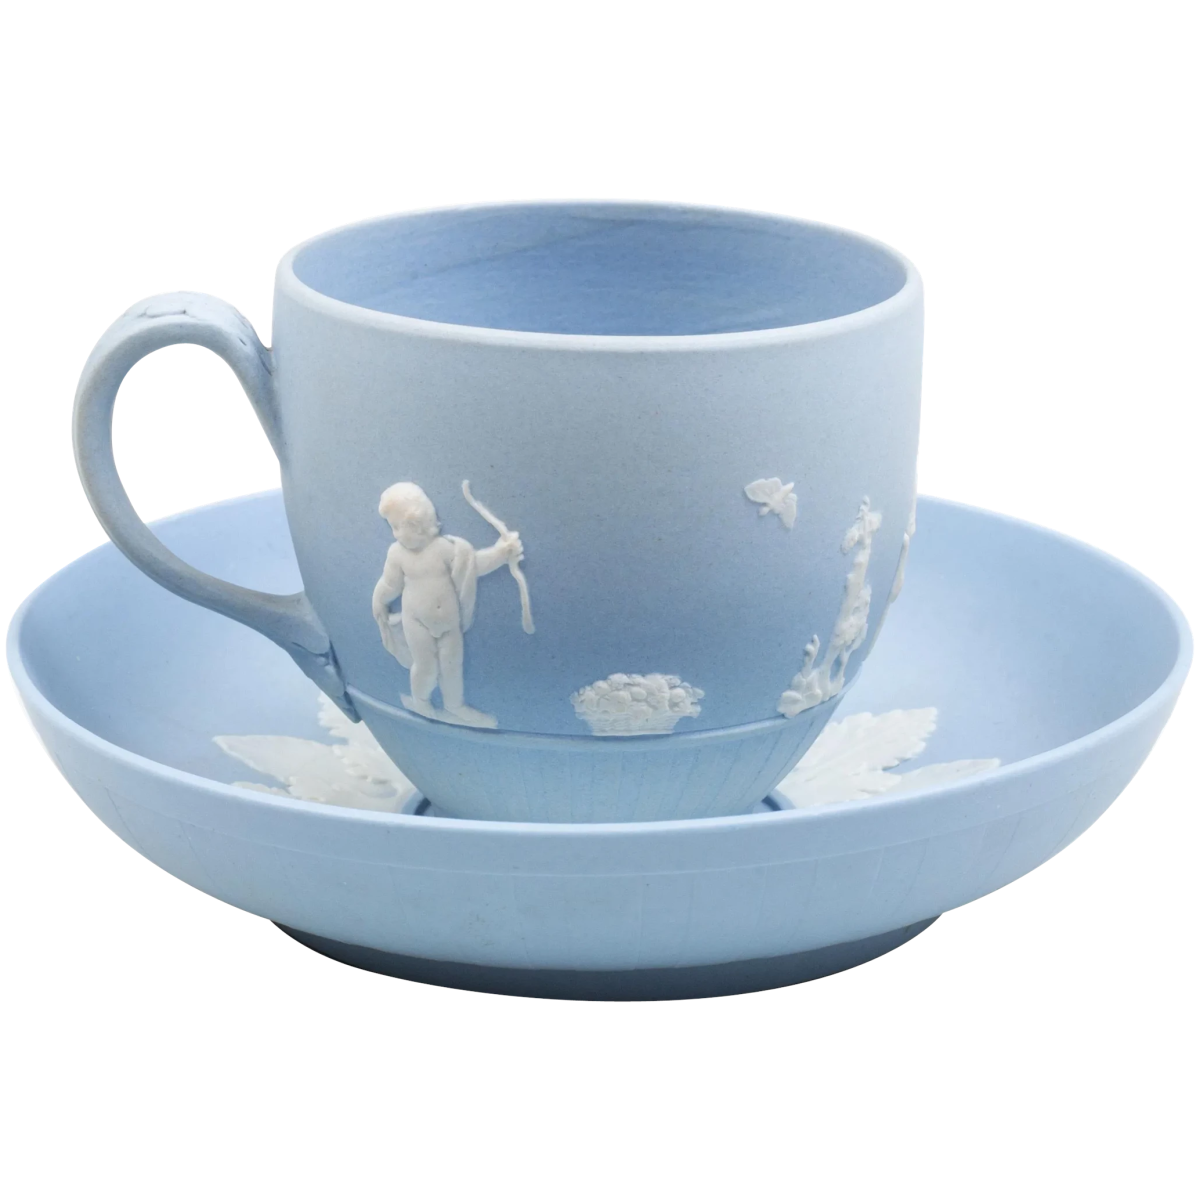 """Wedgwood blue jasperware tea cup and saucer after a design by Lady Templeton, 18th century, light blue body applied with classical figures depicting """"domestic employment."""" Saucer 5"""" dia, impressed lowercase mark, $985."""